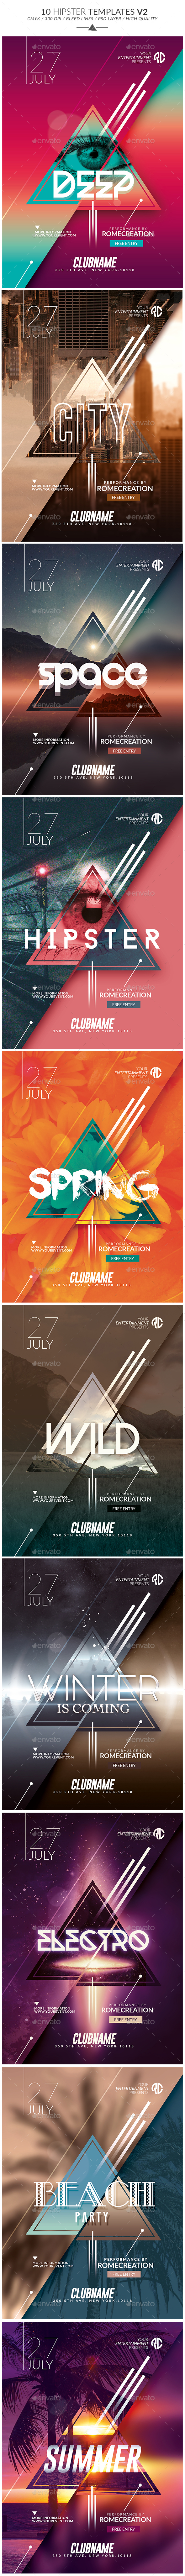 Package Hipster | x10 Minimal Flyer Templates V2 - Events Flyers